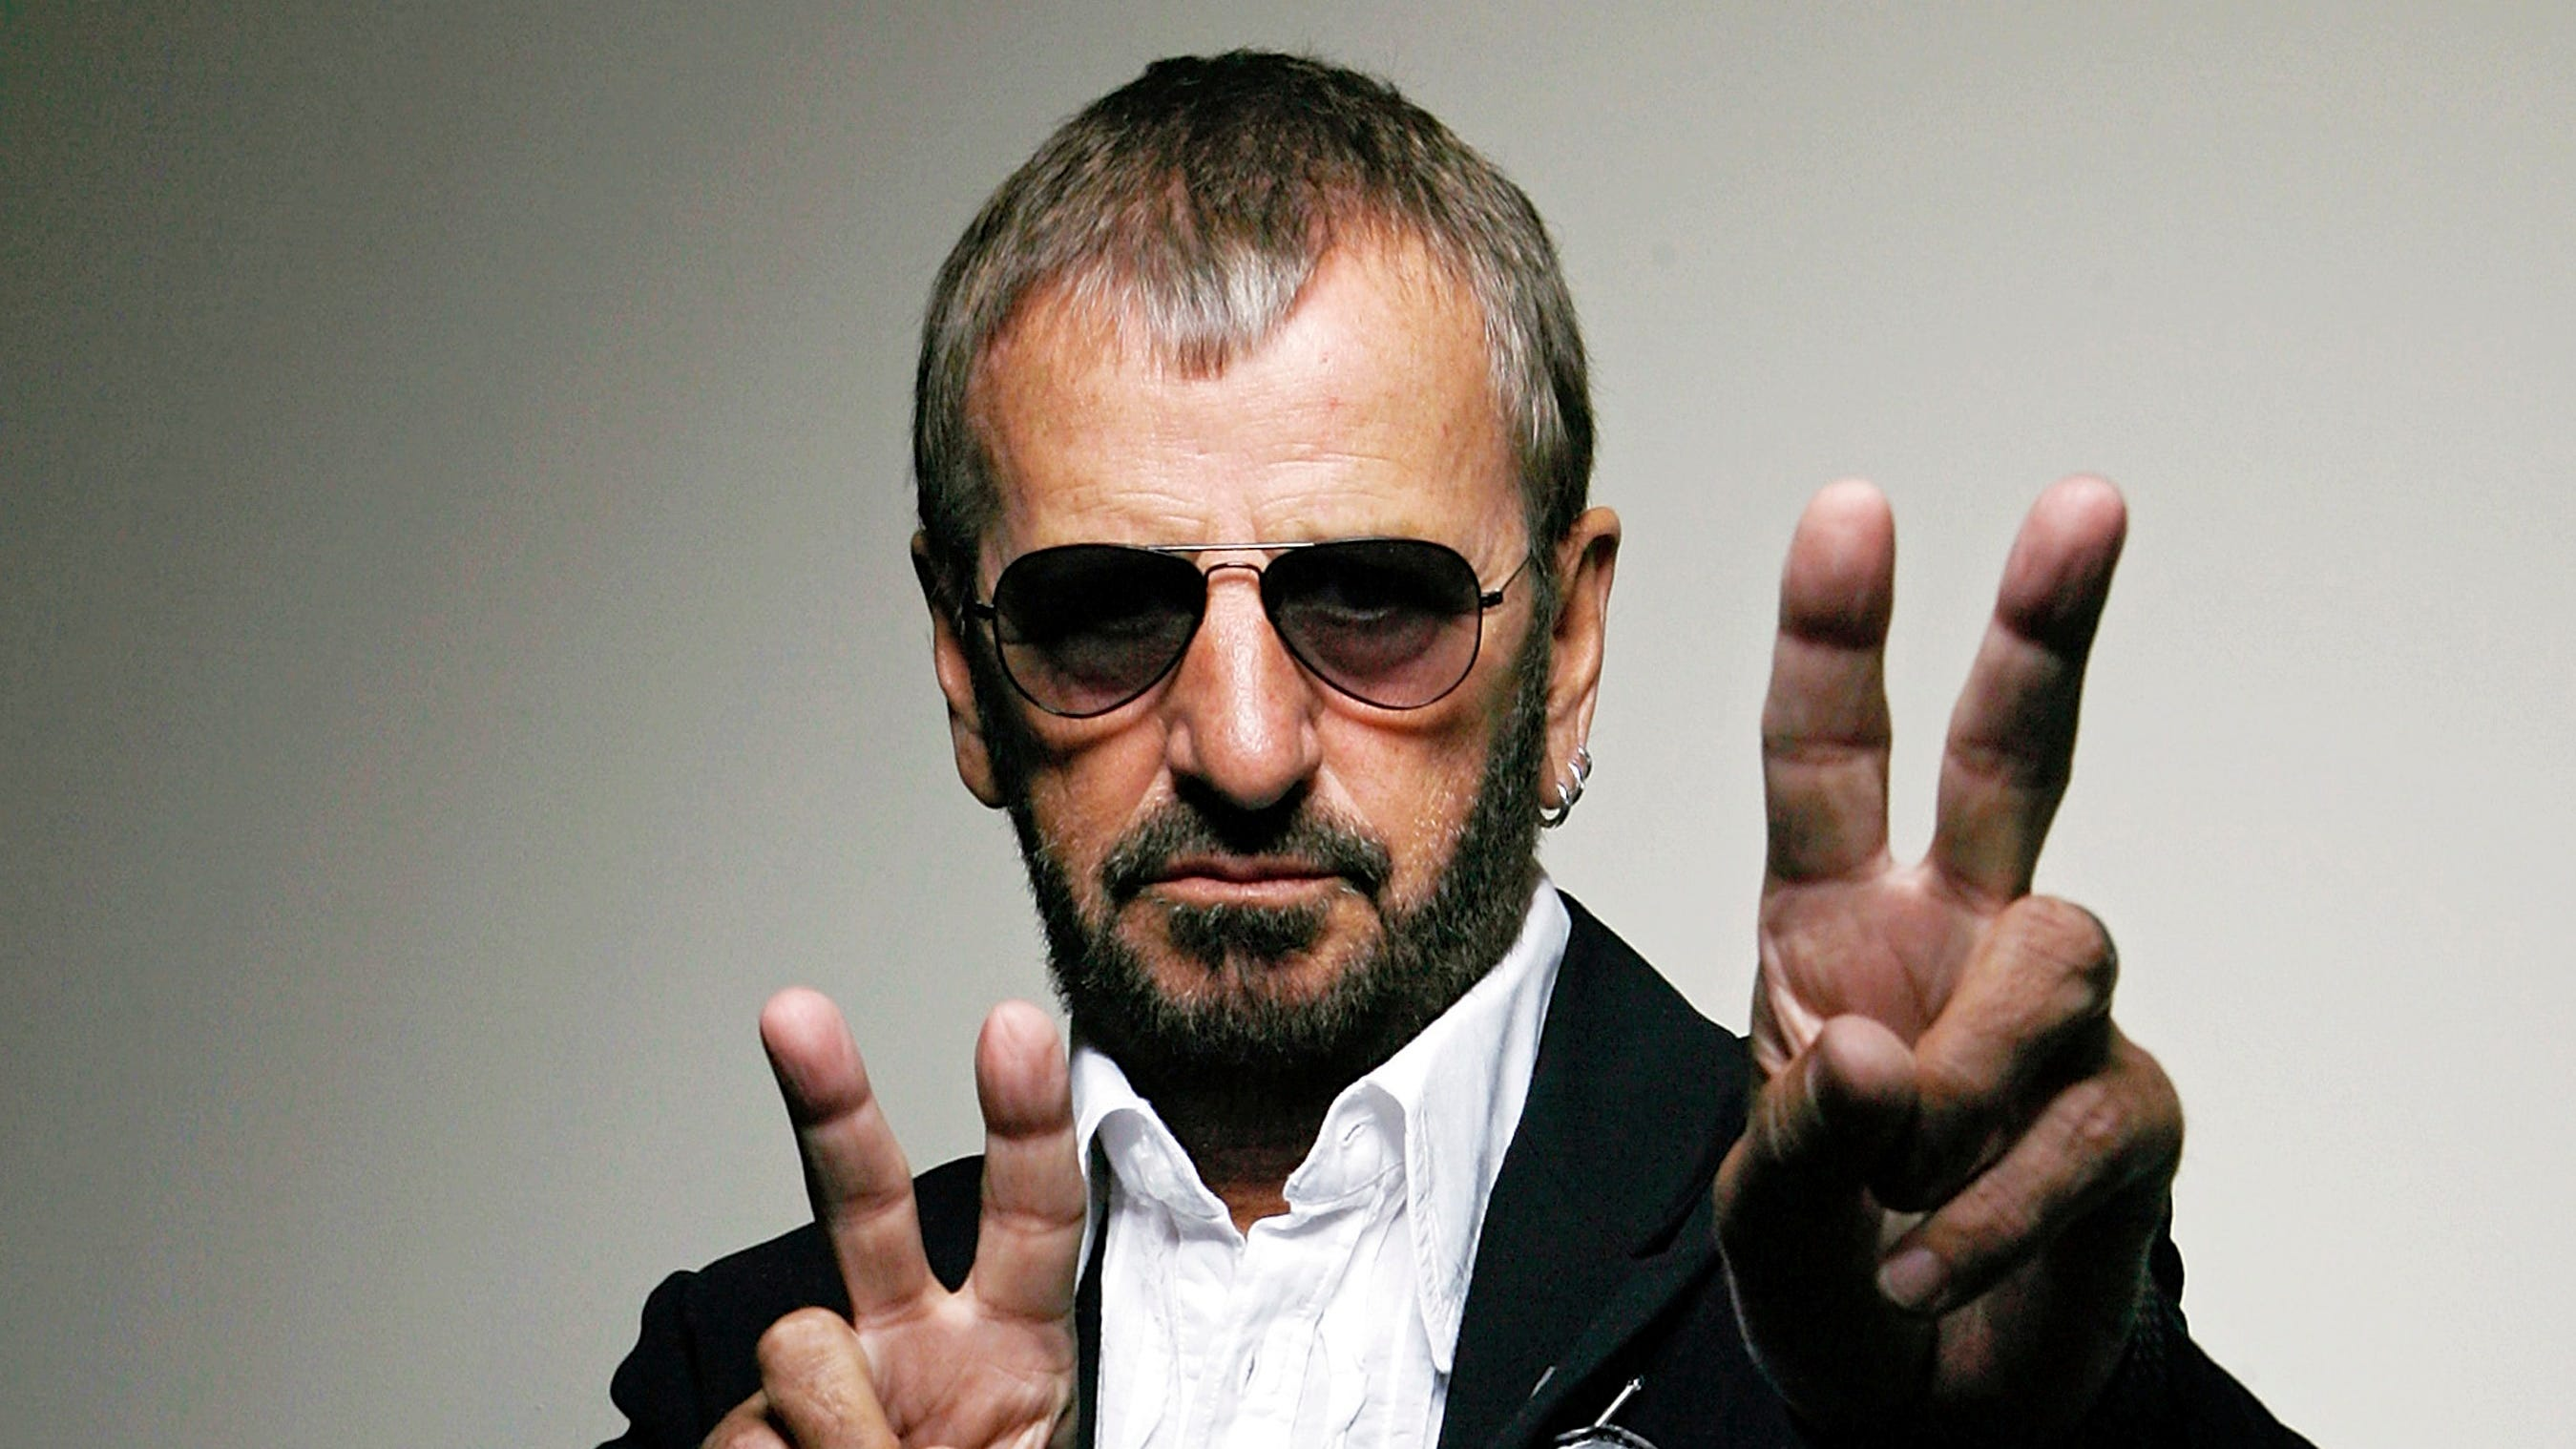 Ringo Starr Drops New Song Announced New Ep Recorded During Lockdown